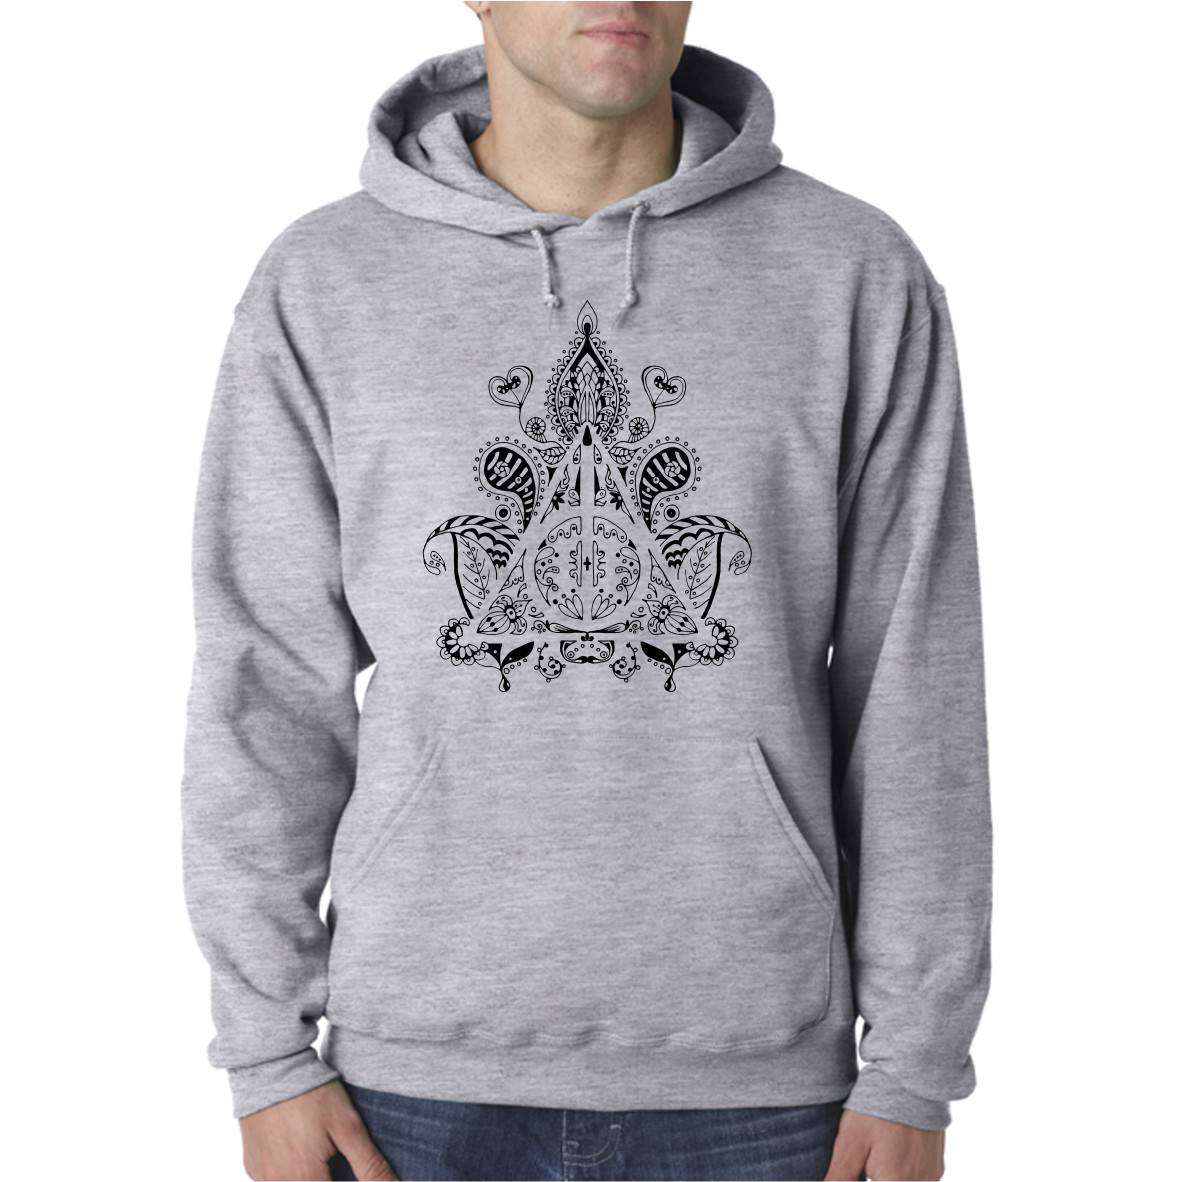 FANCY HALLOWS UNISEX HOODED